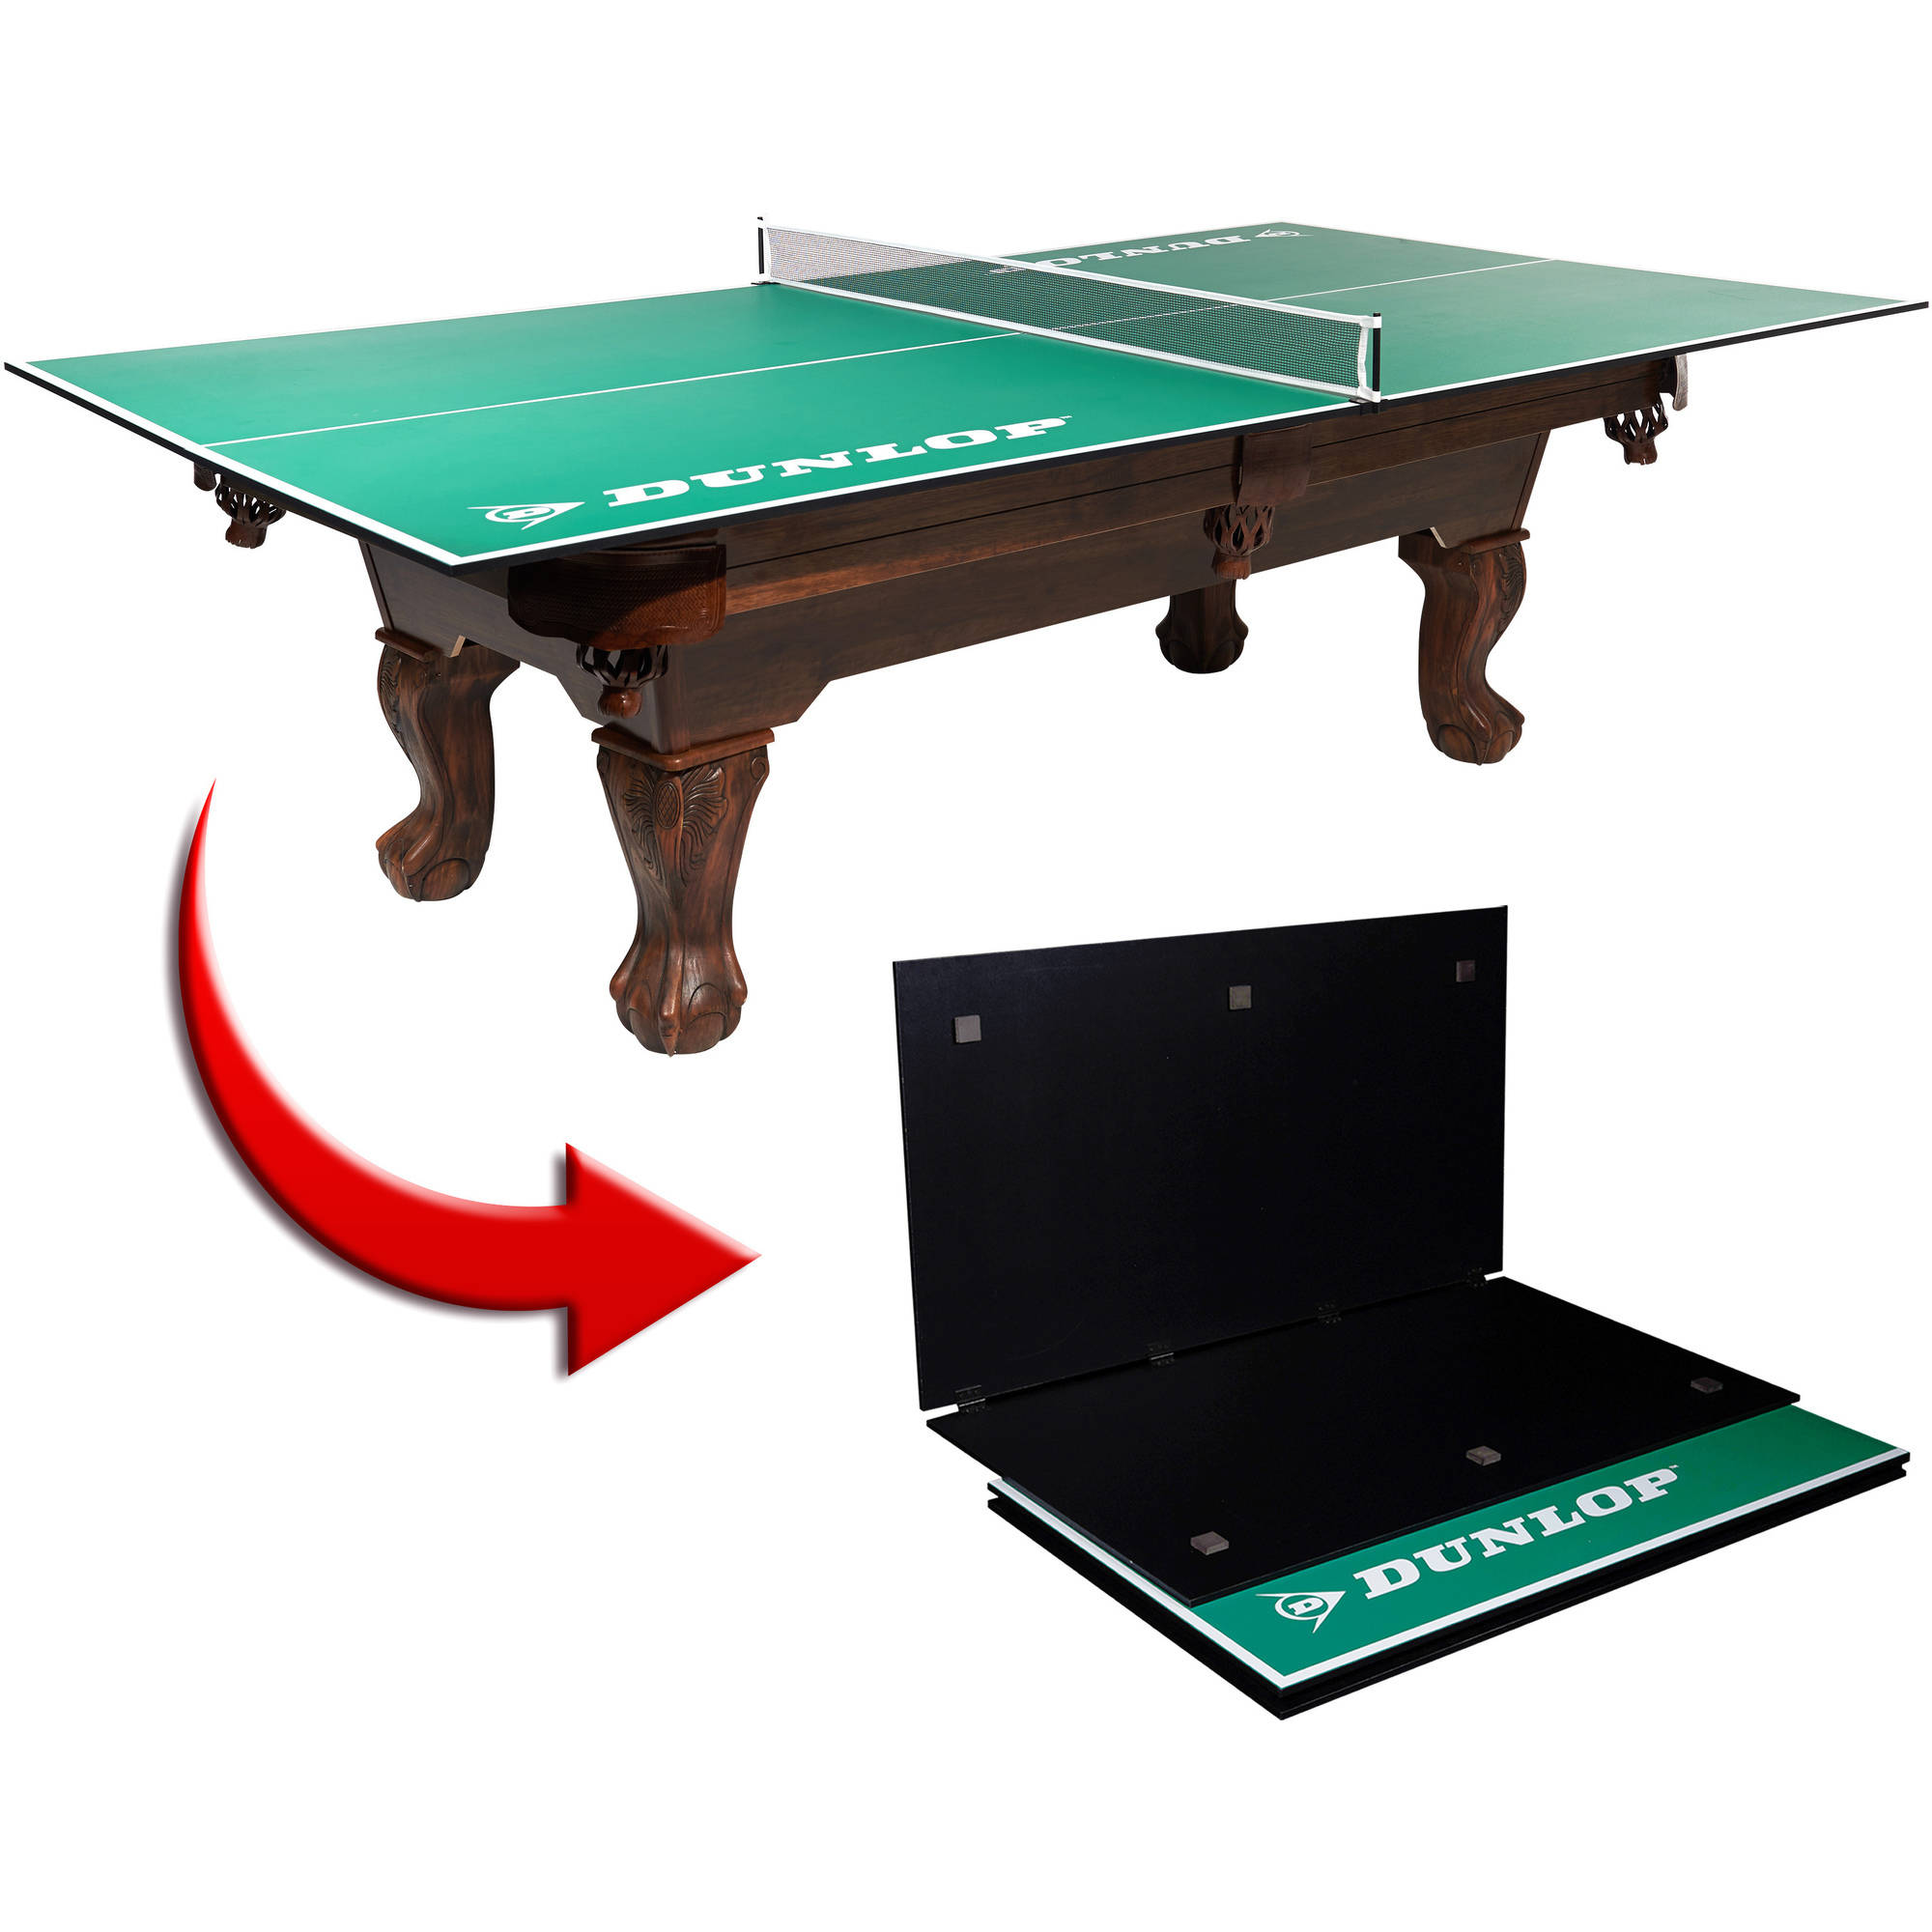 sc 1 st  Walmart & DUNLOP Official Size Table Tennis Conversion Top - Walmart.com